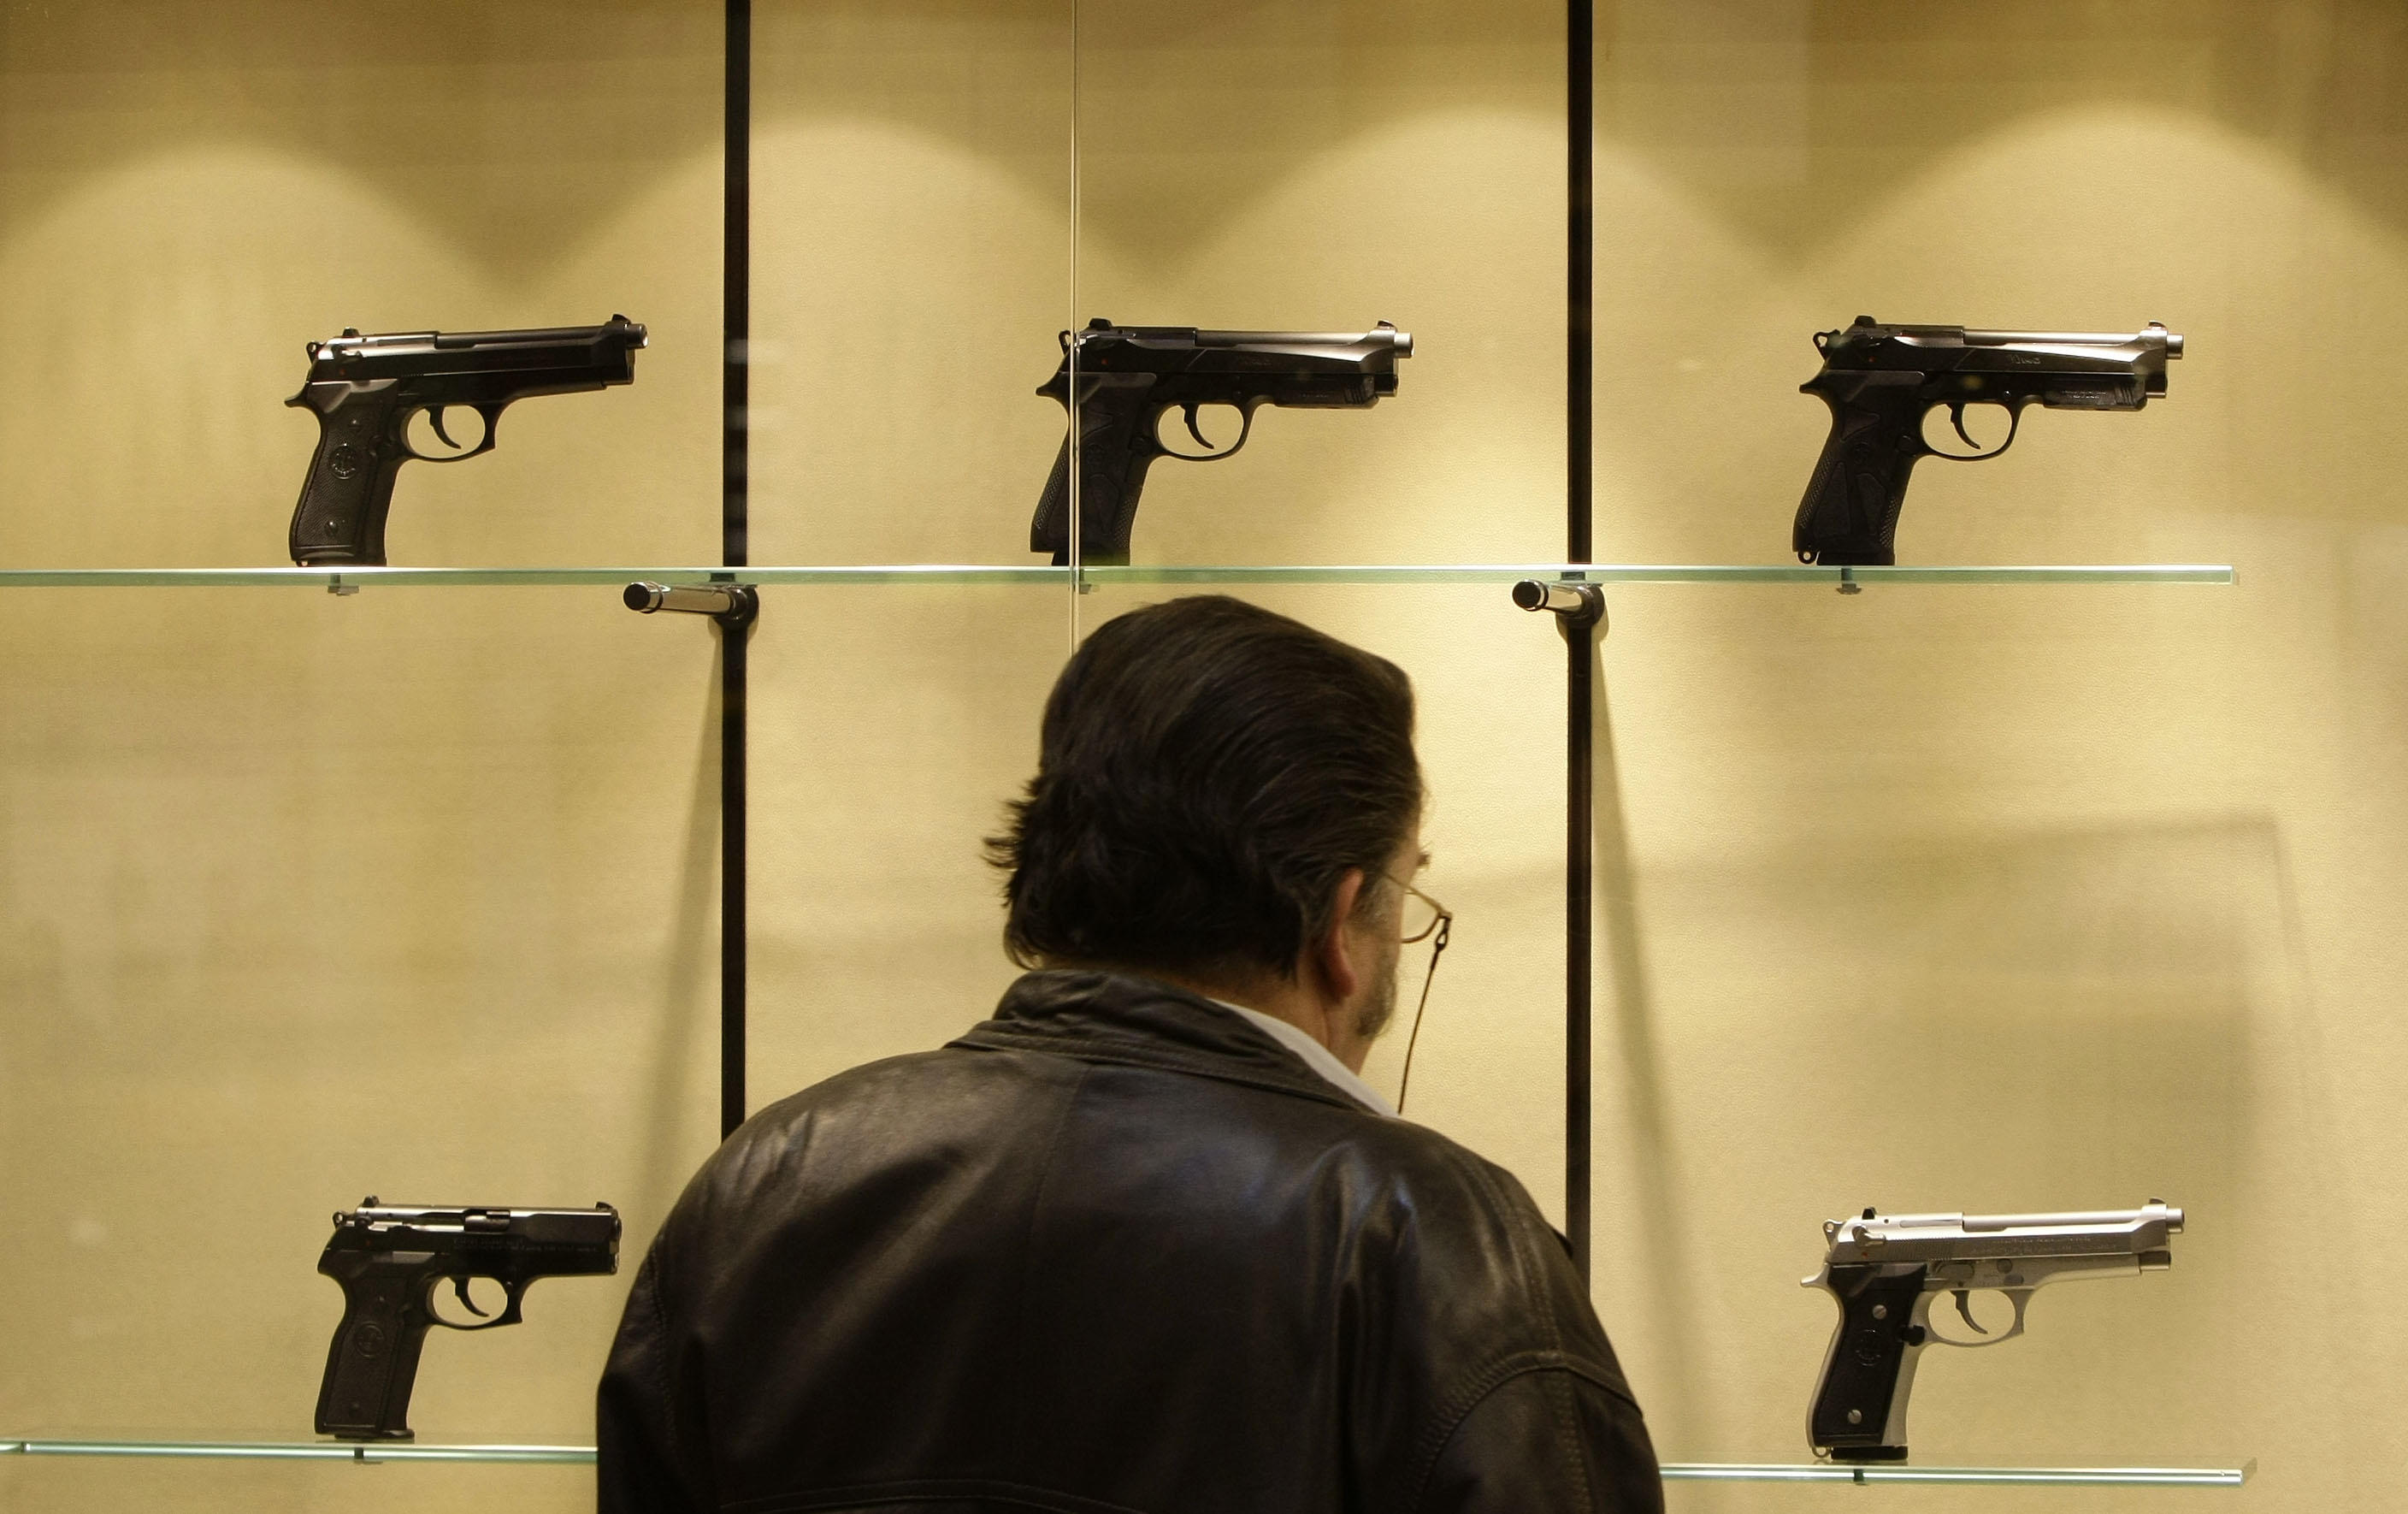 'Smart' gun control? Dem bill would require all new guns be 'personalized'